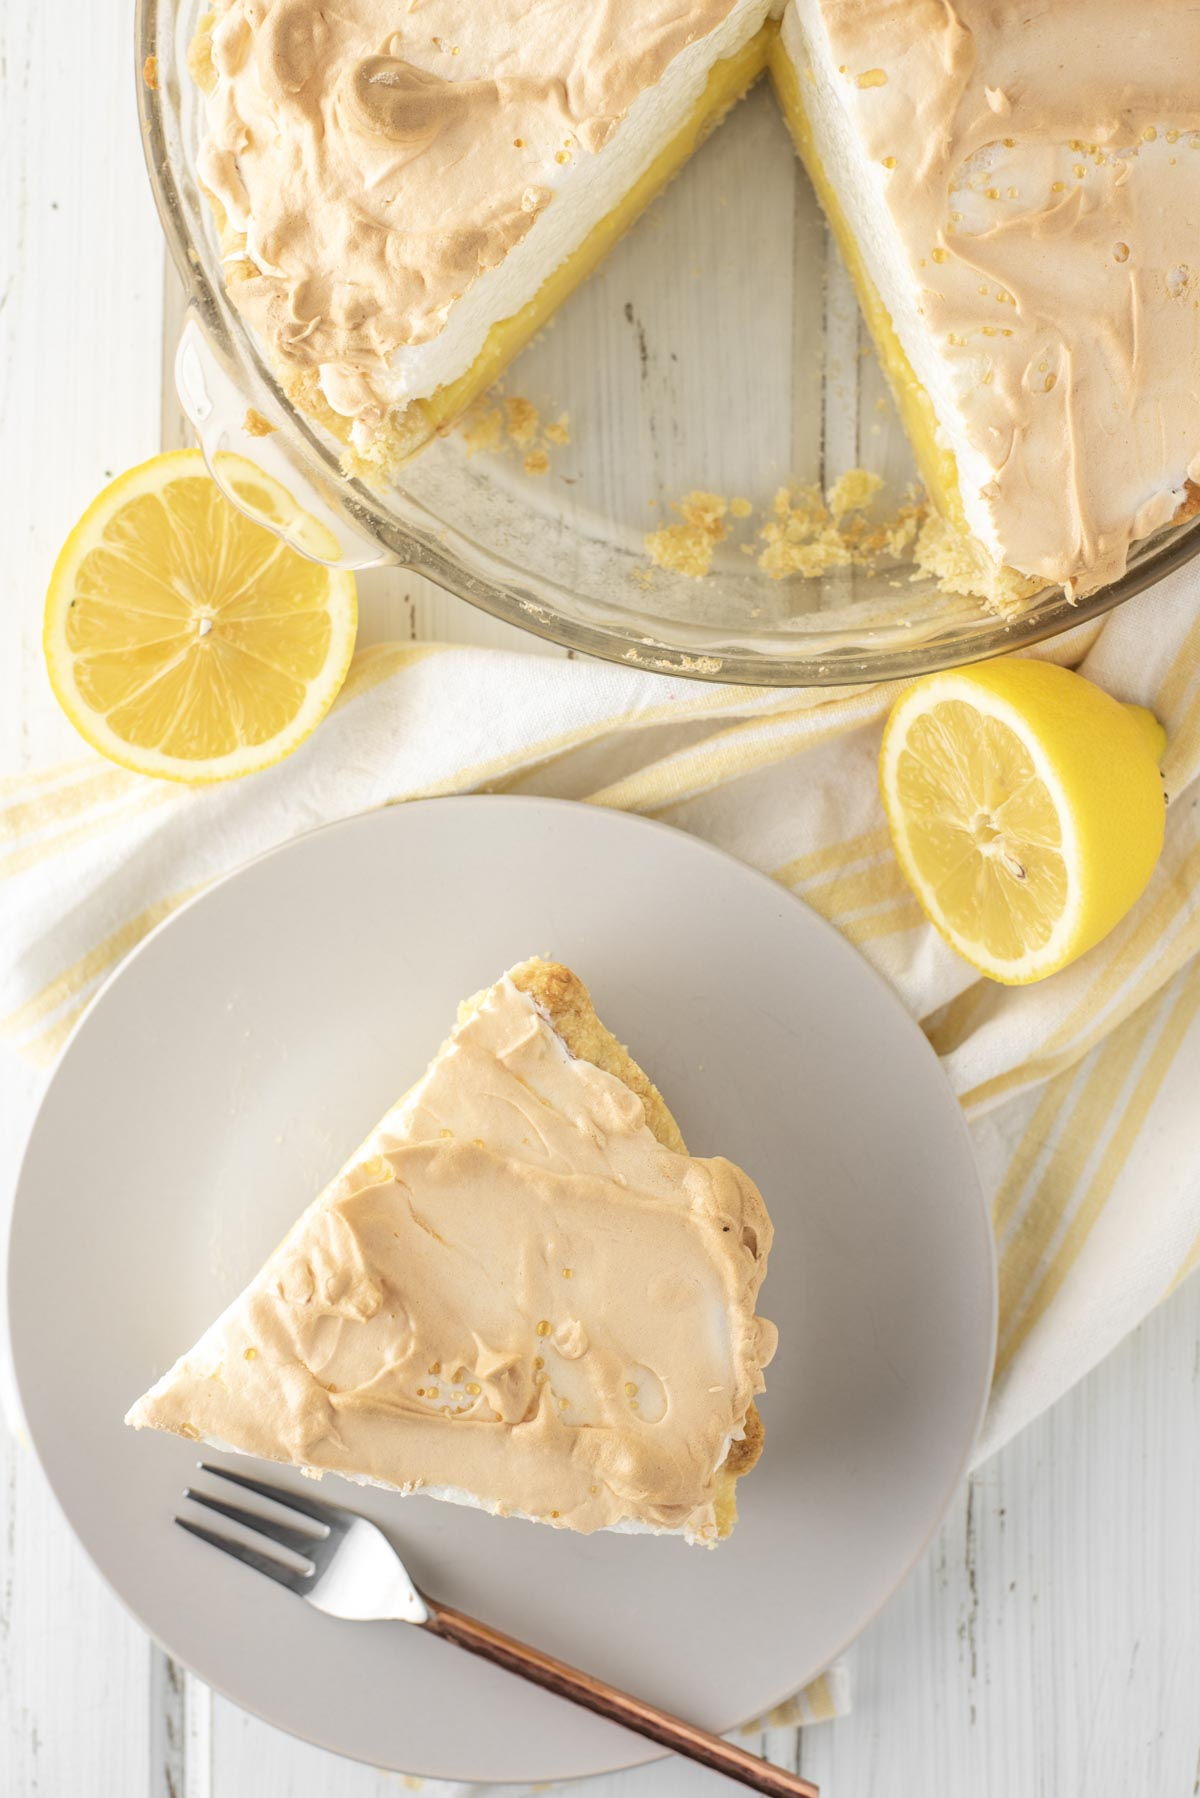 overhead shot of slice of pie on plate with rest of pie in glass dish